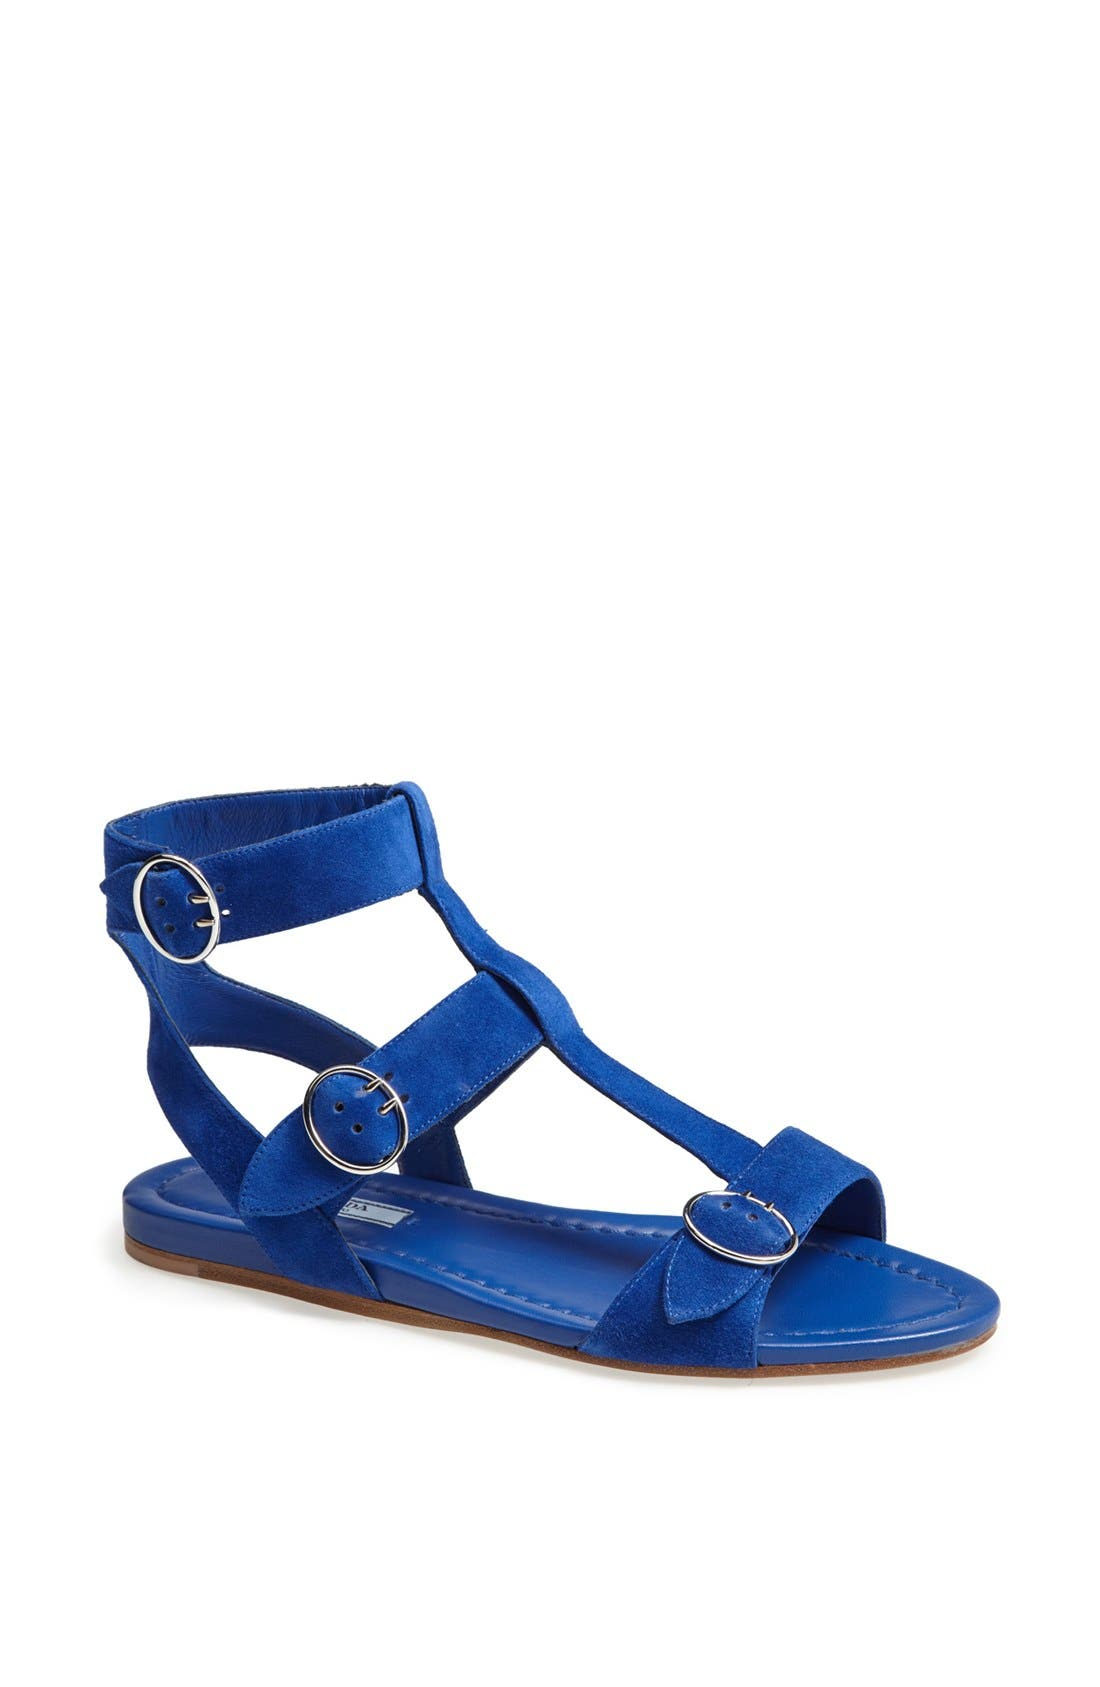 Main Image - Prada Triple Buckle Gladiator Sandal